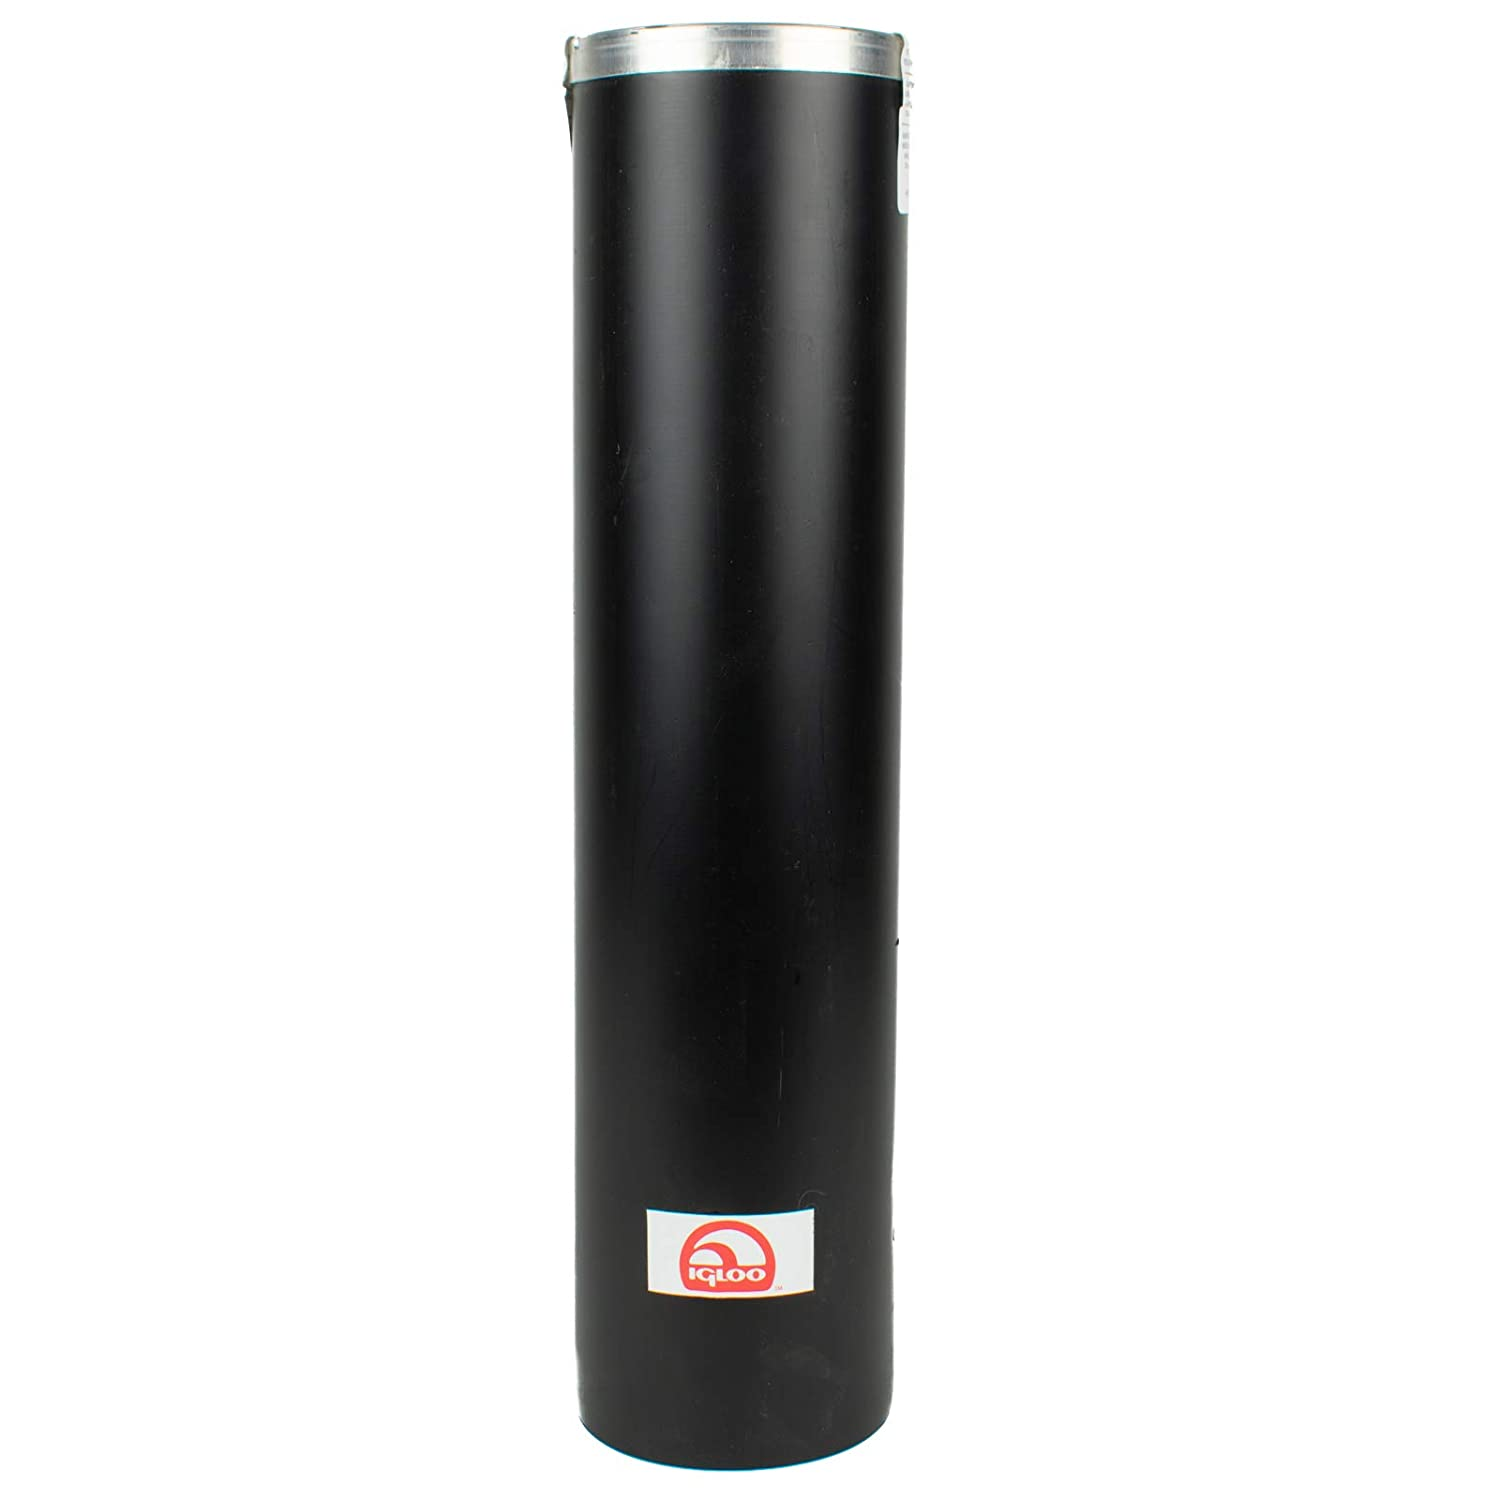 Igloo Cone Cup Dispenser, Fits 5 Gal Water Cooler, Black Plastic